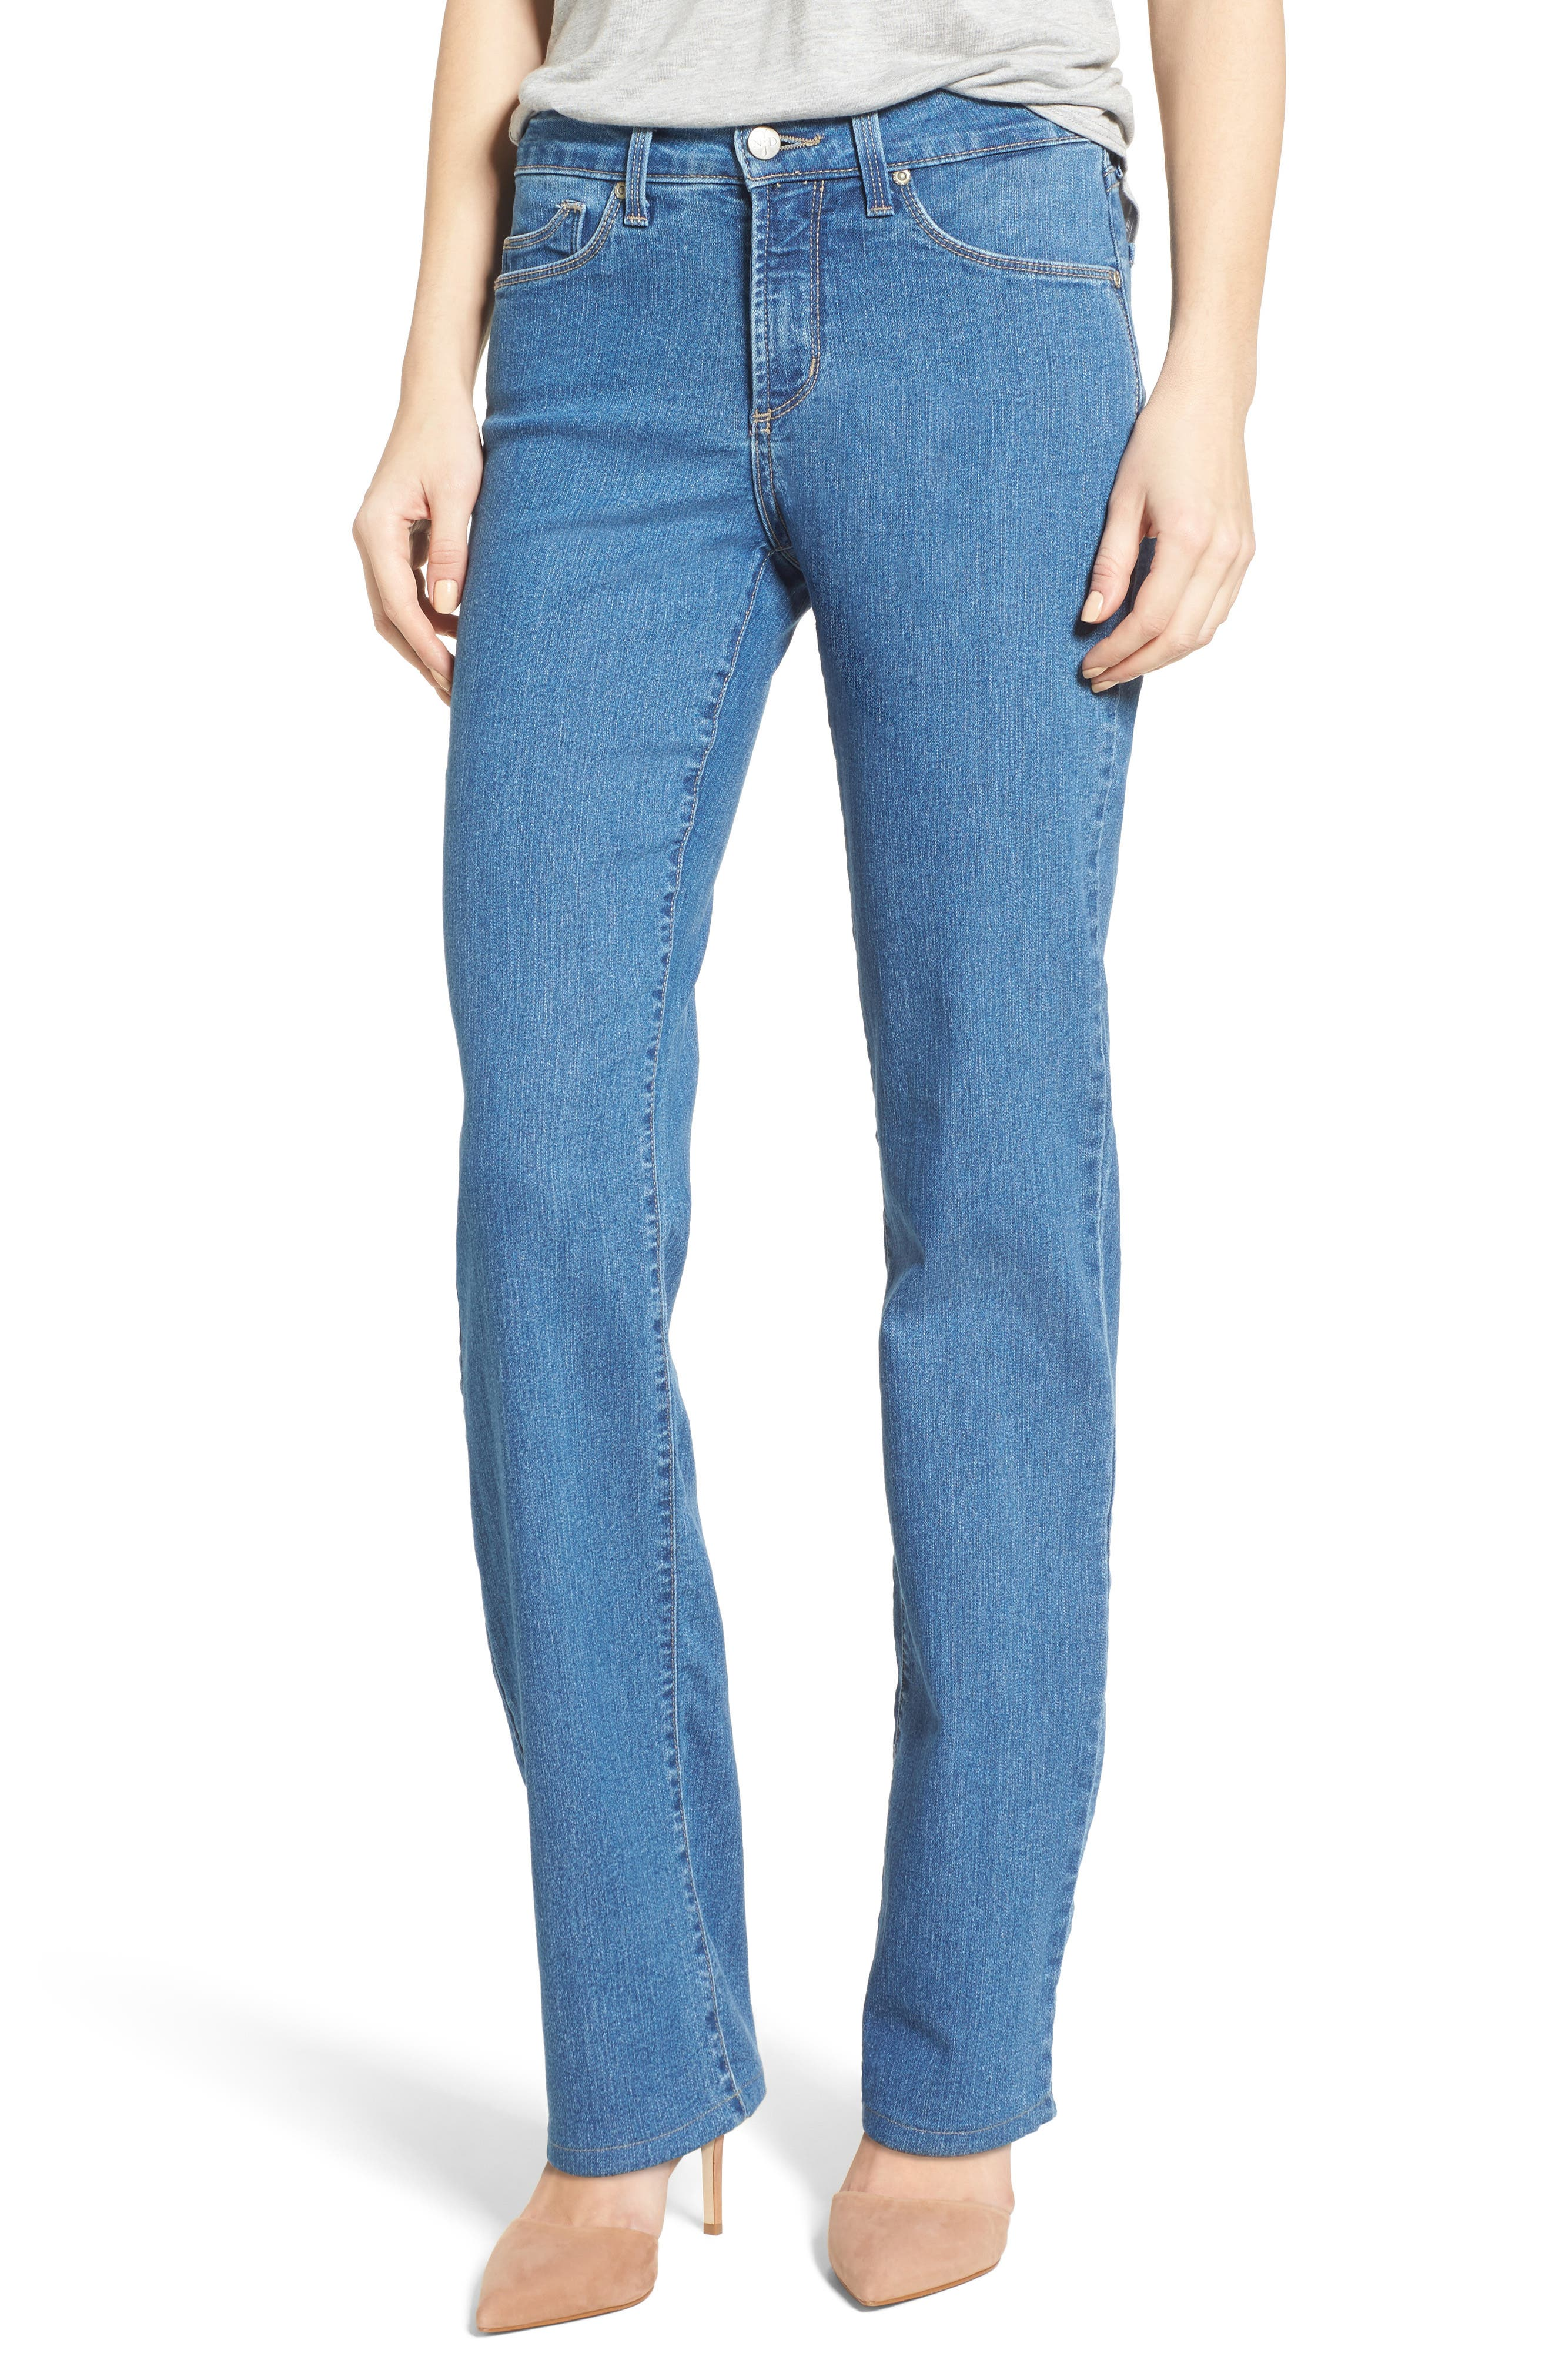 Marilyn Stretch Straight Leg Jeans,                             Main thumbnail 1, color,                             424